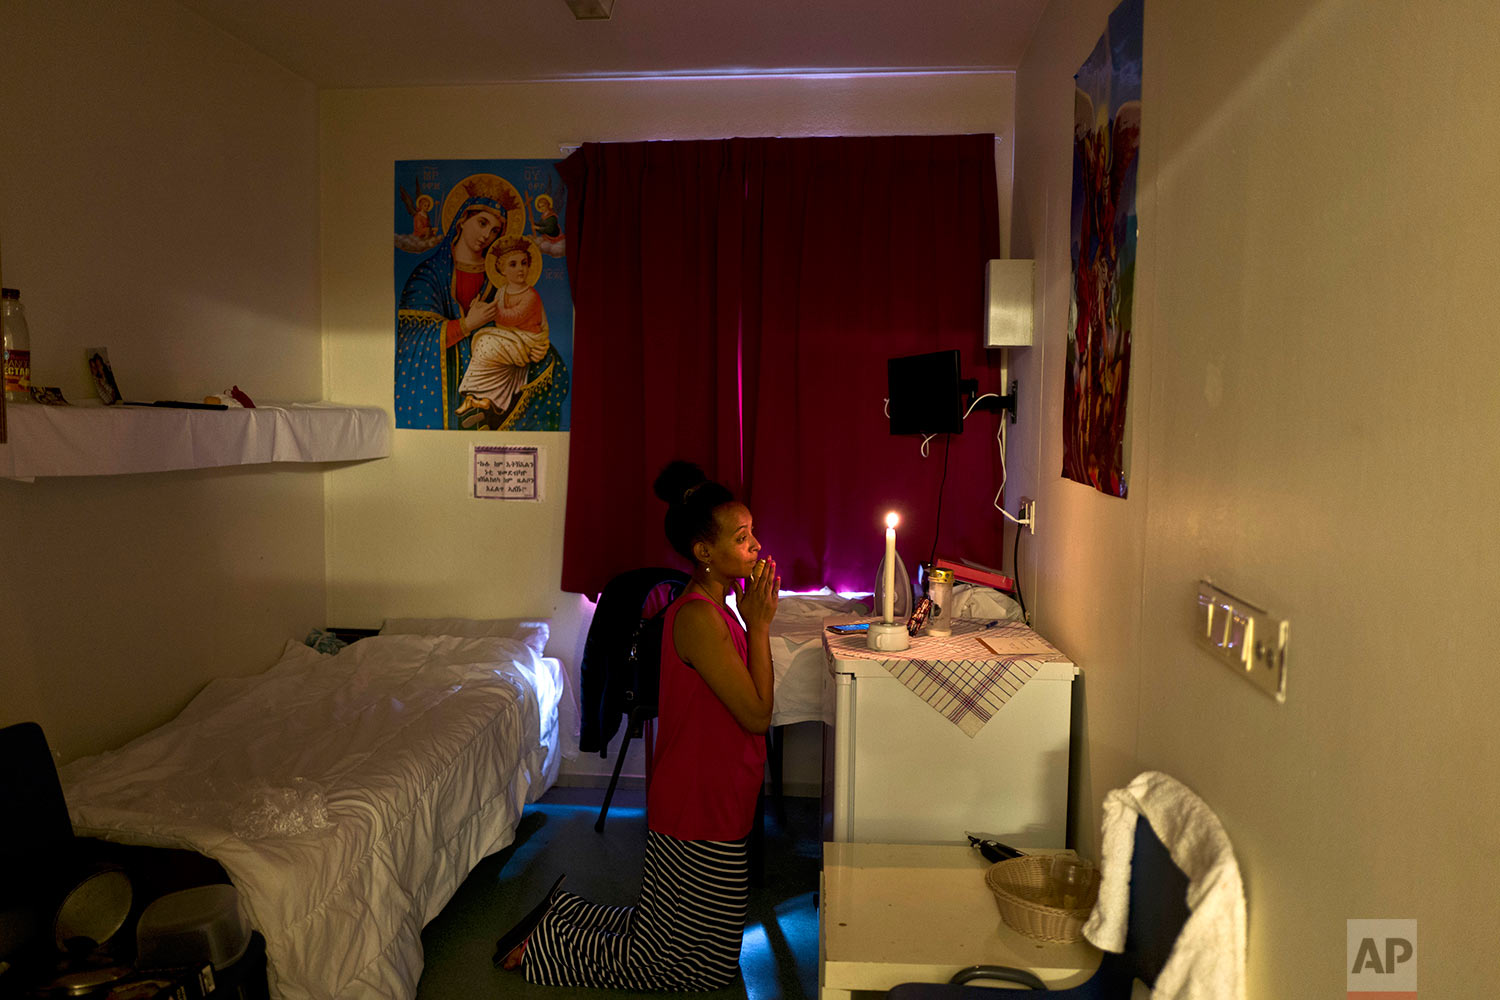 In this Monday, June 26, 2017 photo, Meza Negadtu, 29, a migrant from Eritrea, prays inside her room at the former prison of Bijlmerbajes, in Amsterdam, Netherlands. (AP Photo/Muhammed Muheisen)